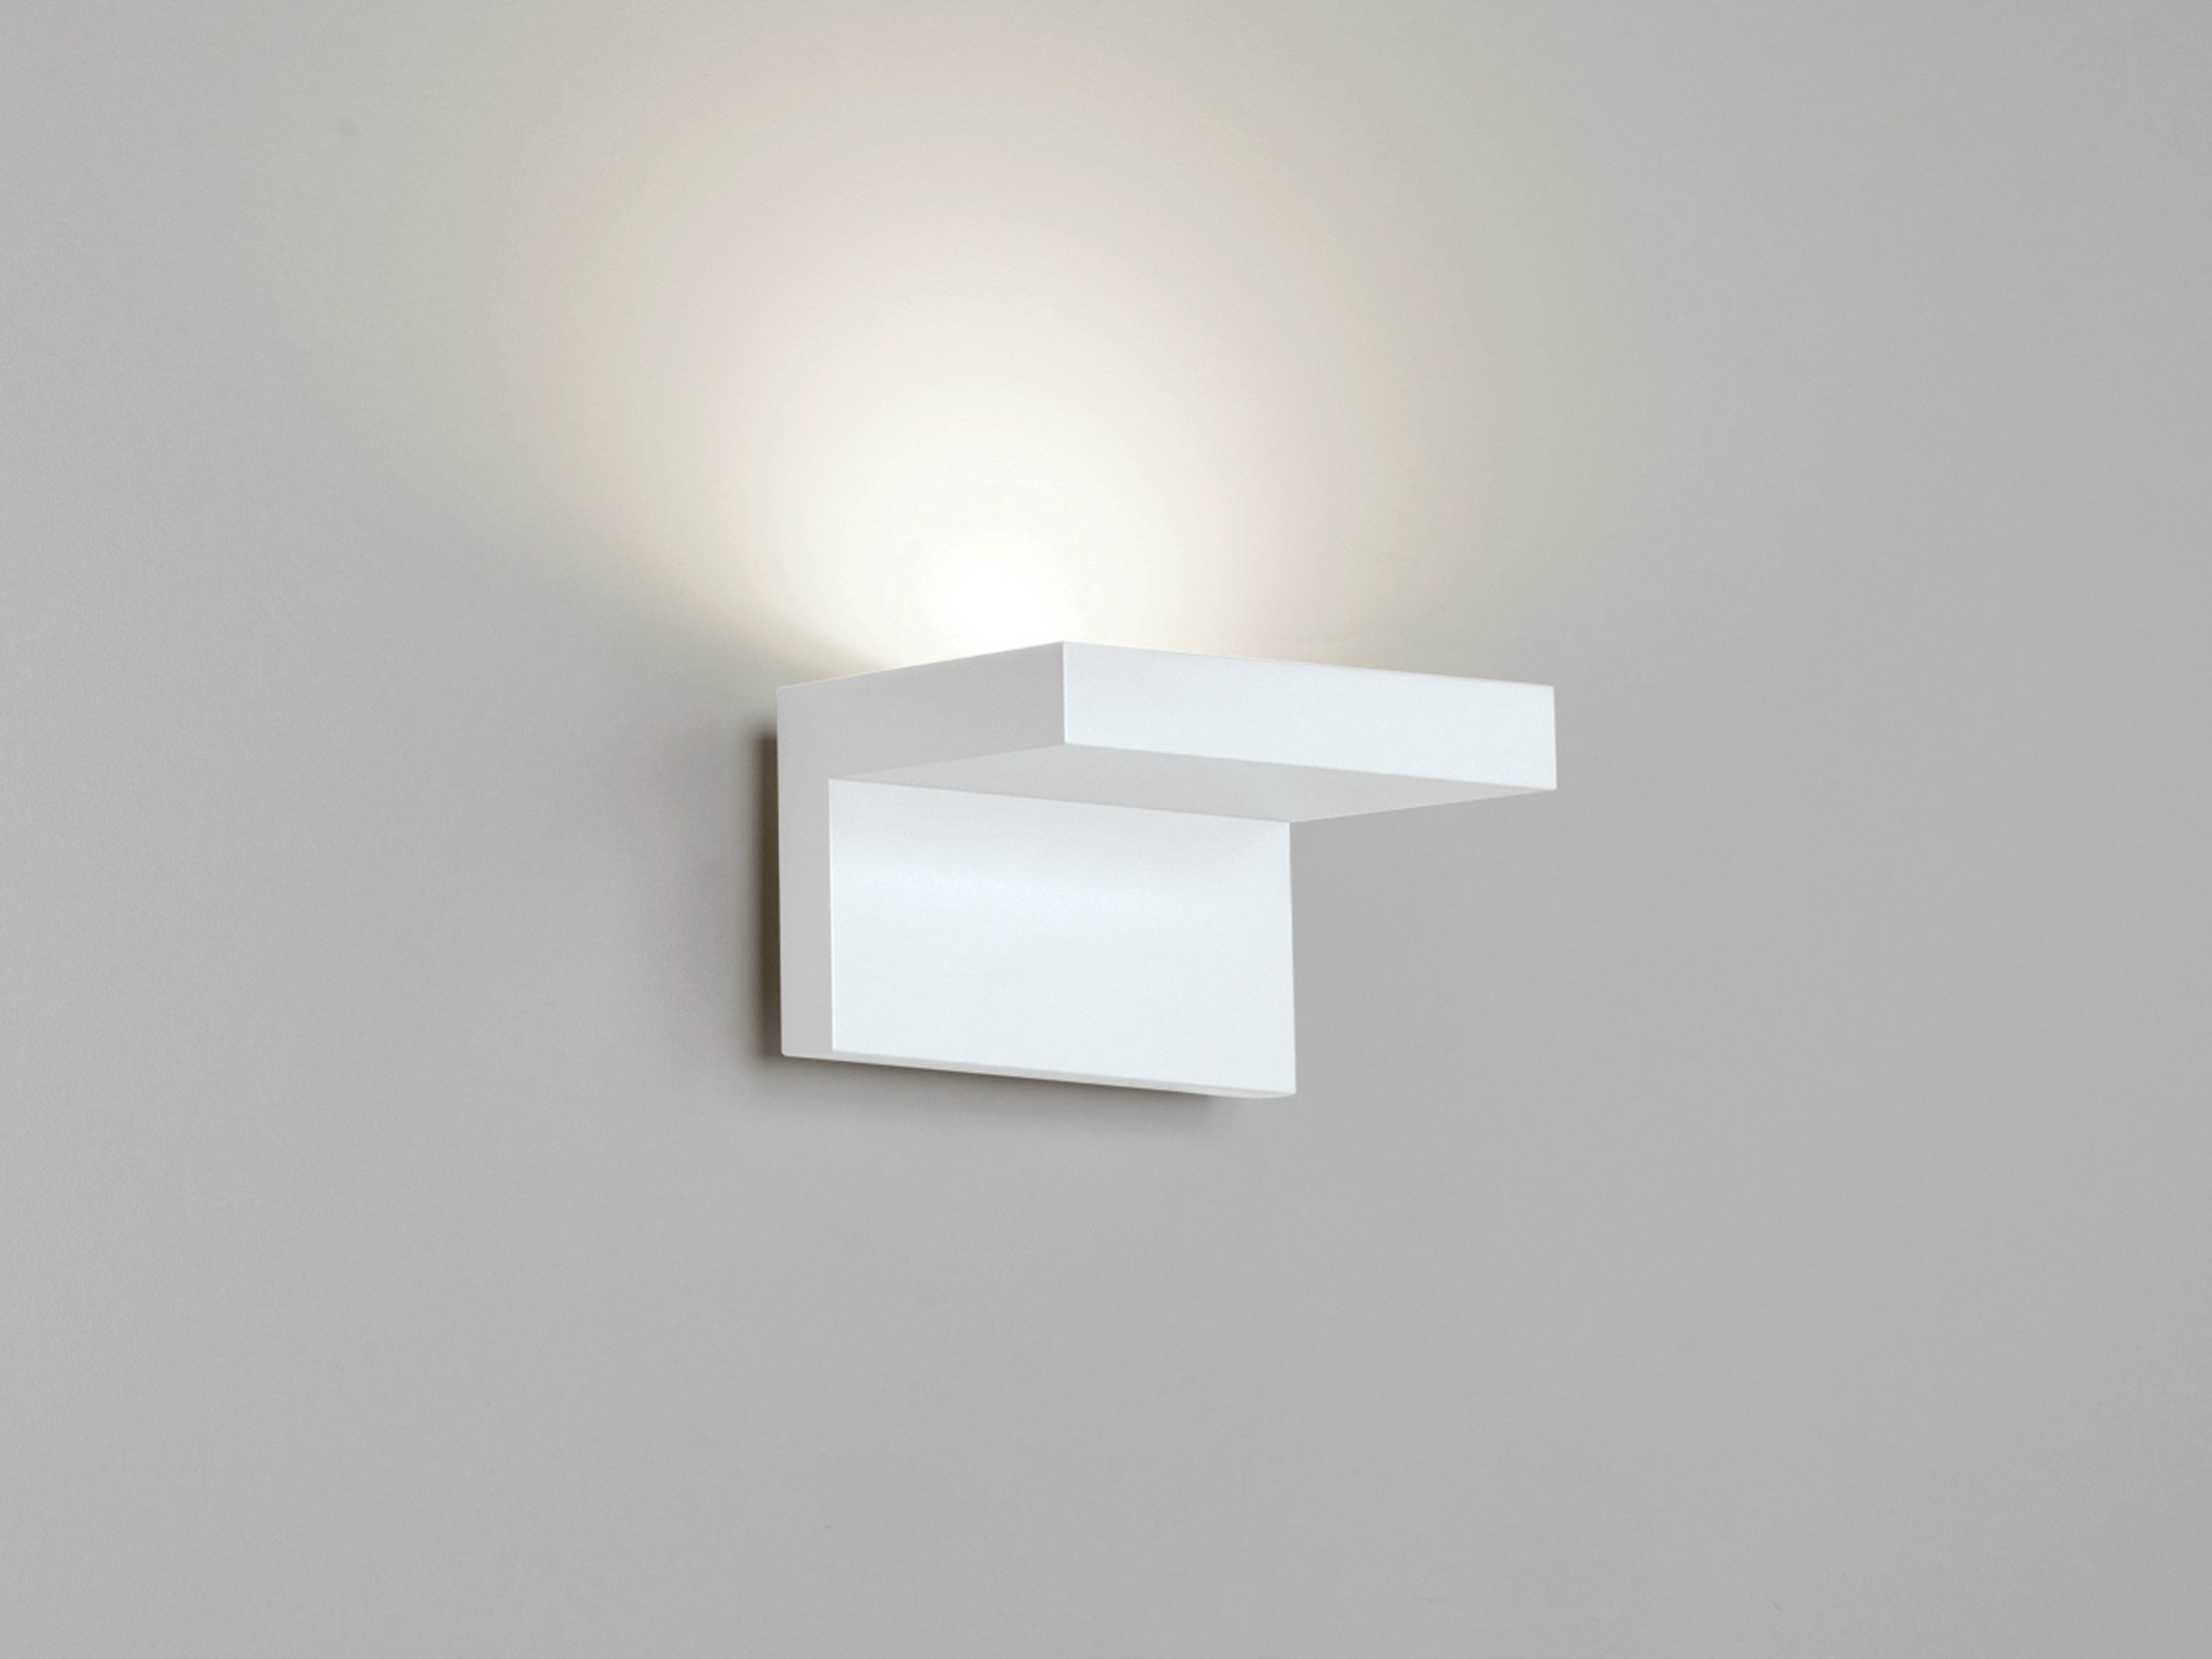 Design LED indirect light wall light STEP W0 by Rotaliana ...